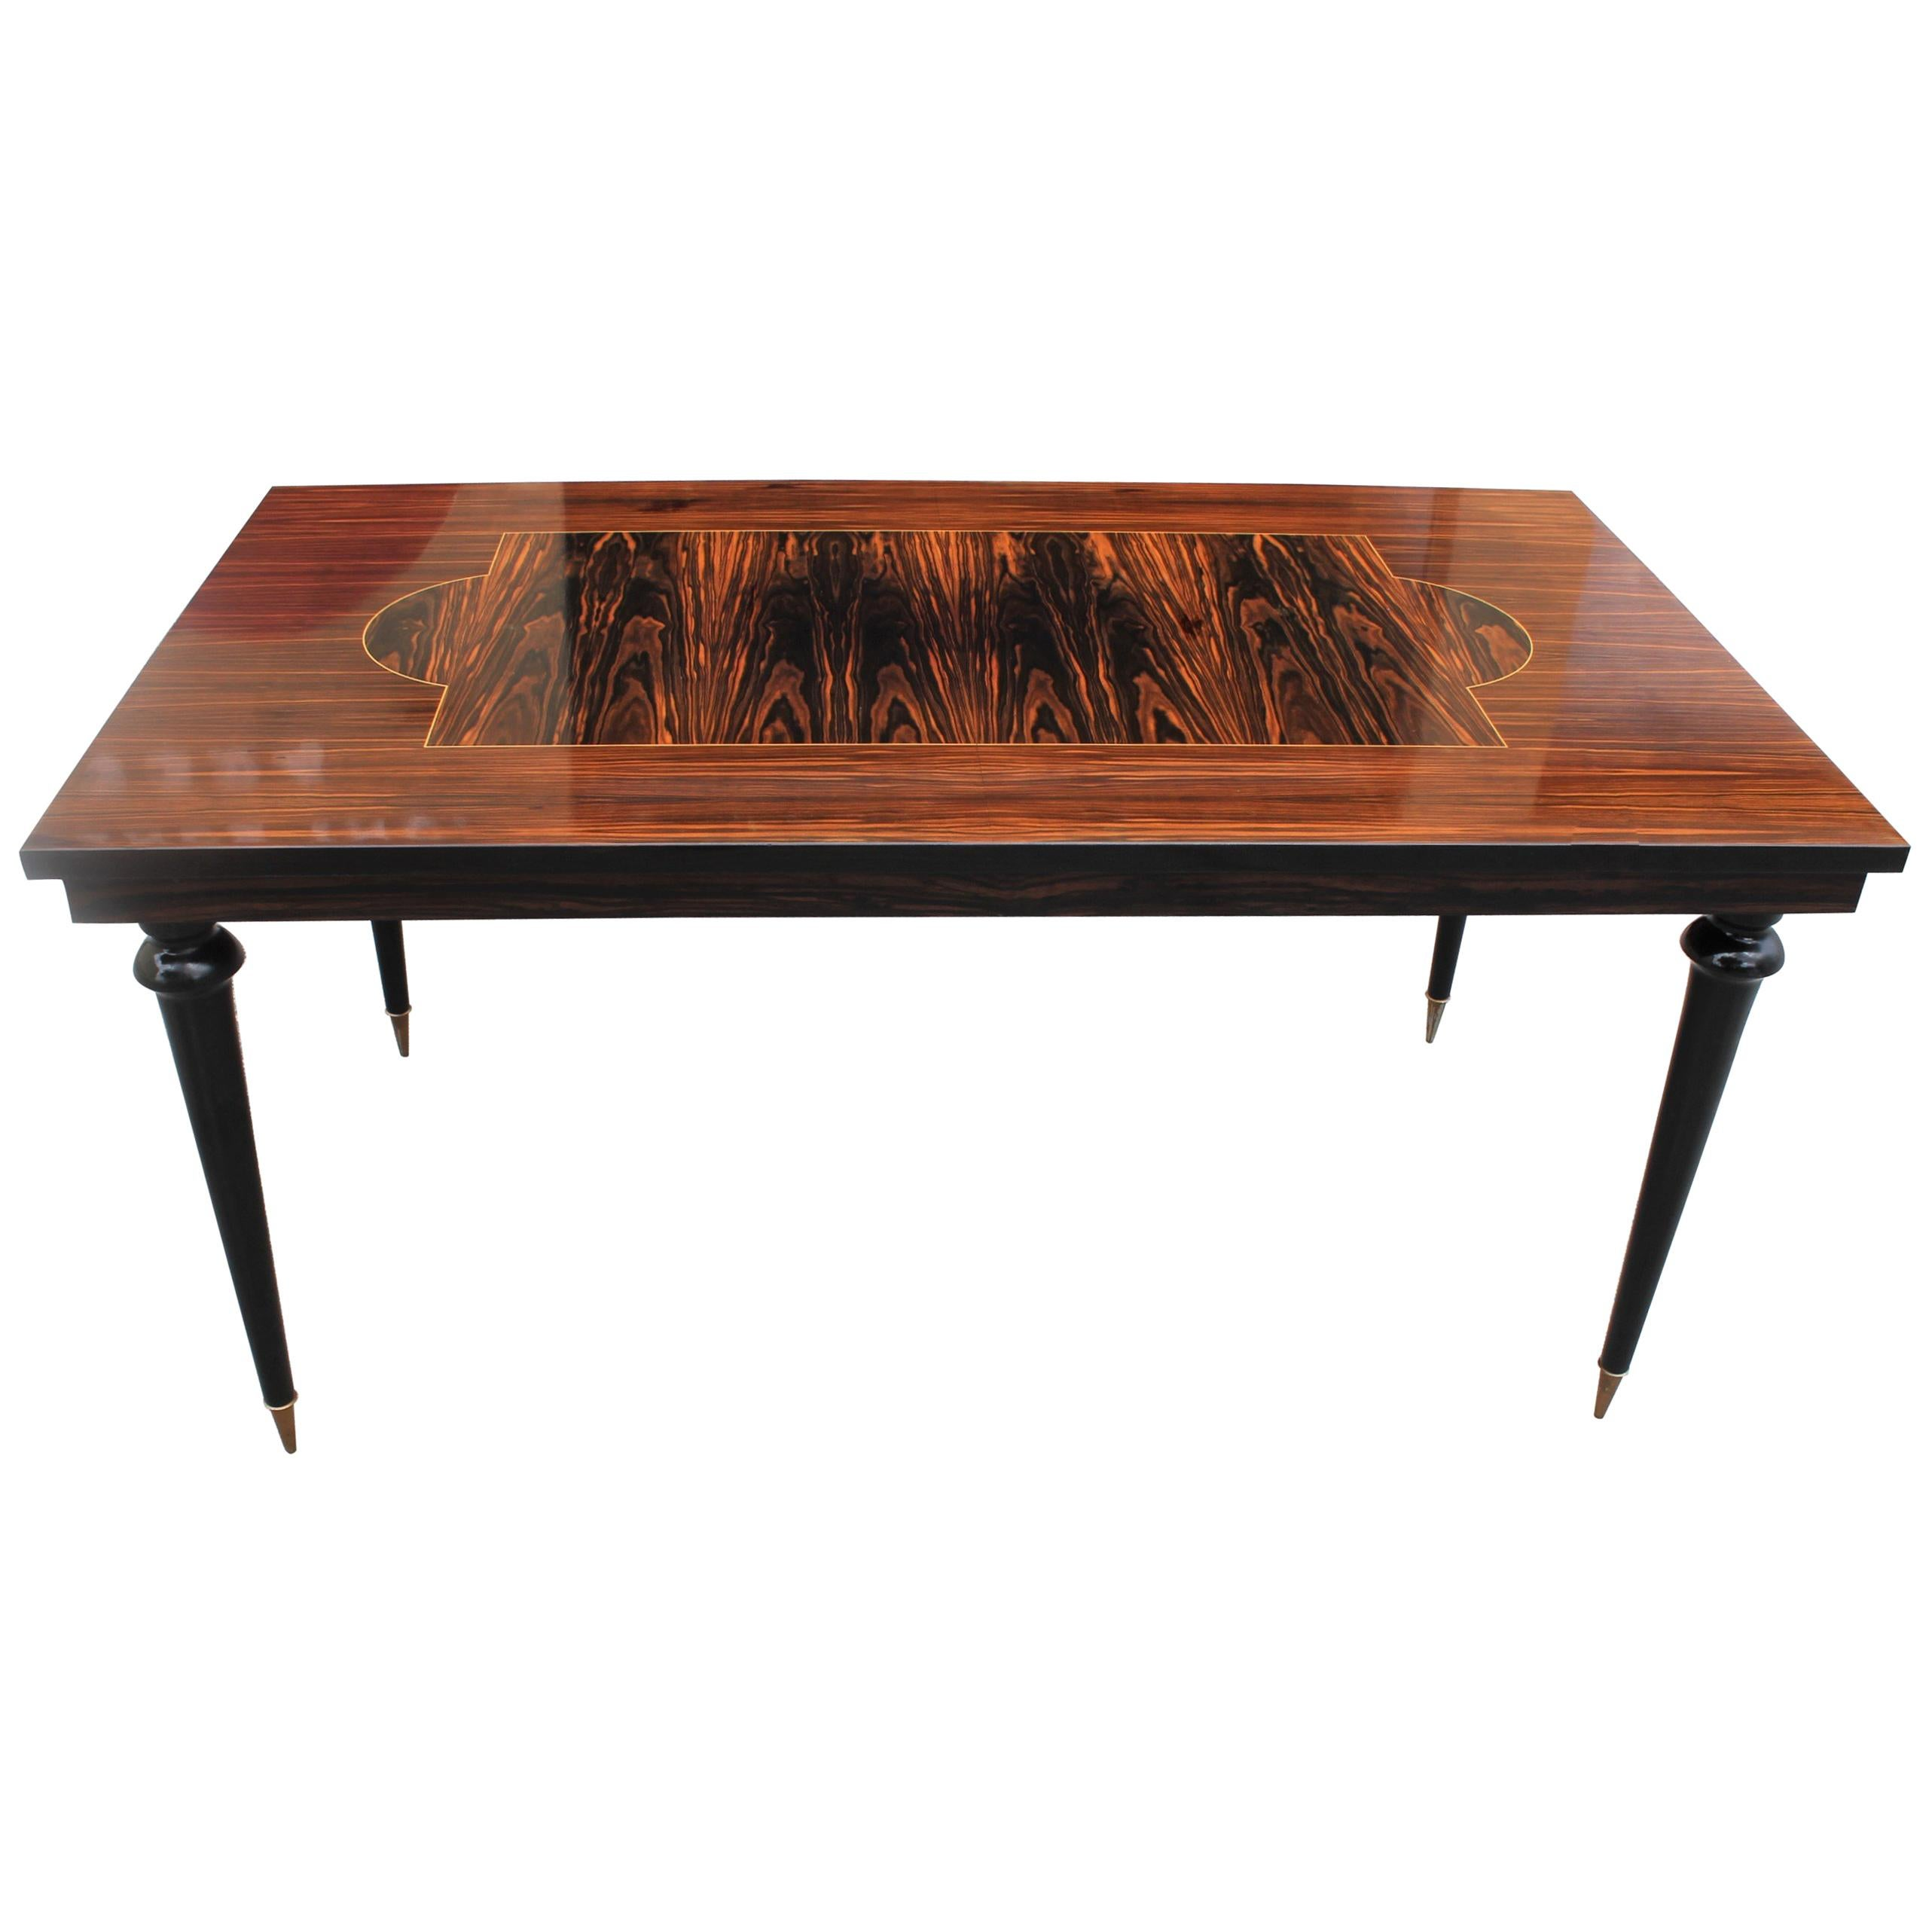 1stdibs Antiques Vintage And Mid Century Modern Furniture Jewelry